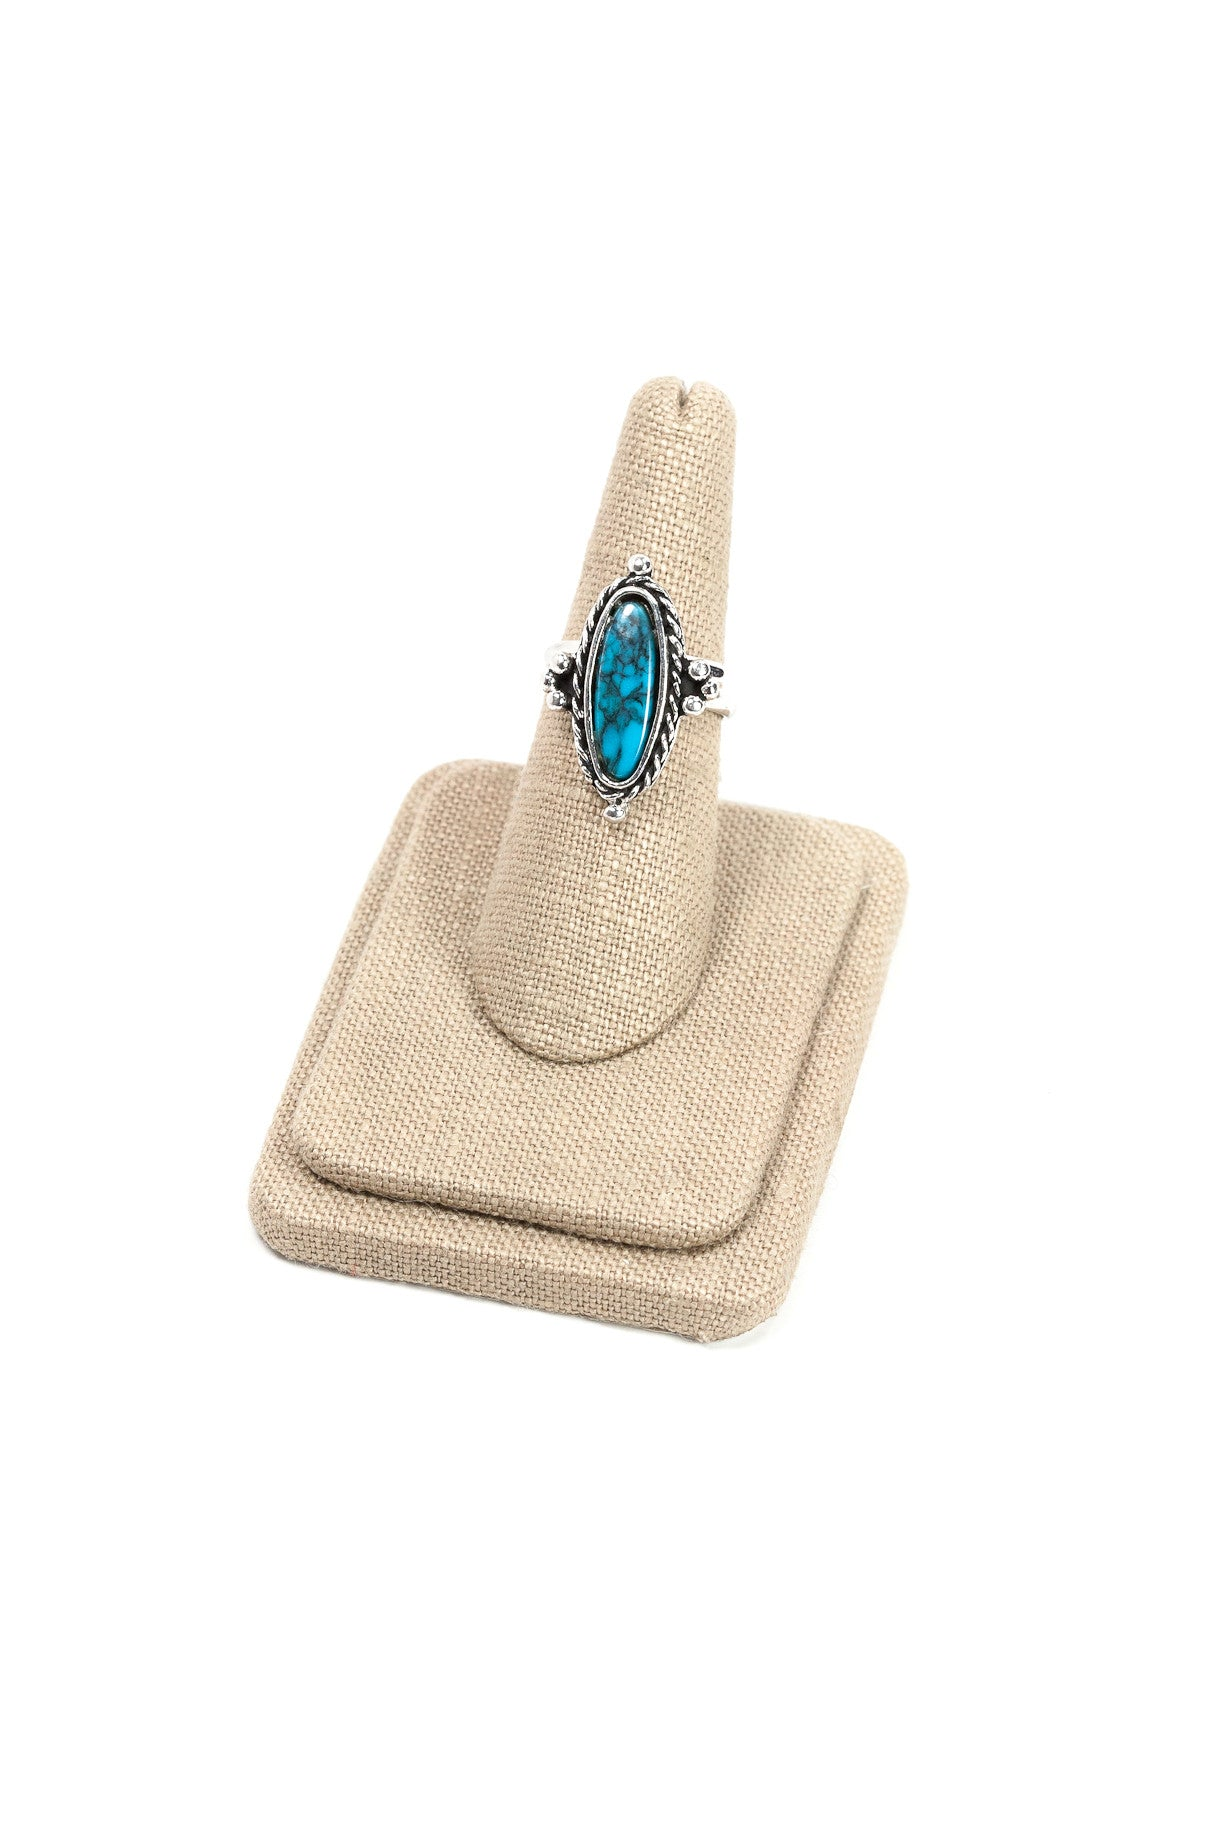 70's__Vintage__Adjustable Turquoise Ring